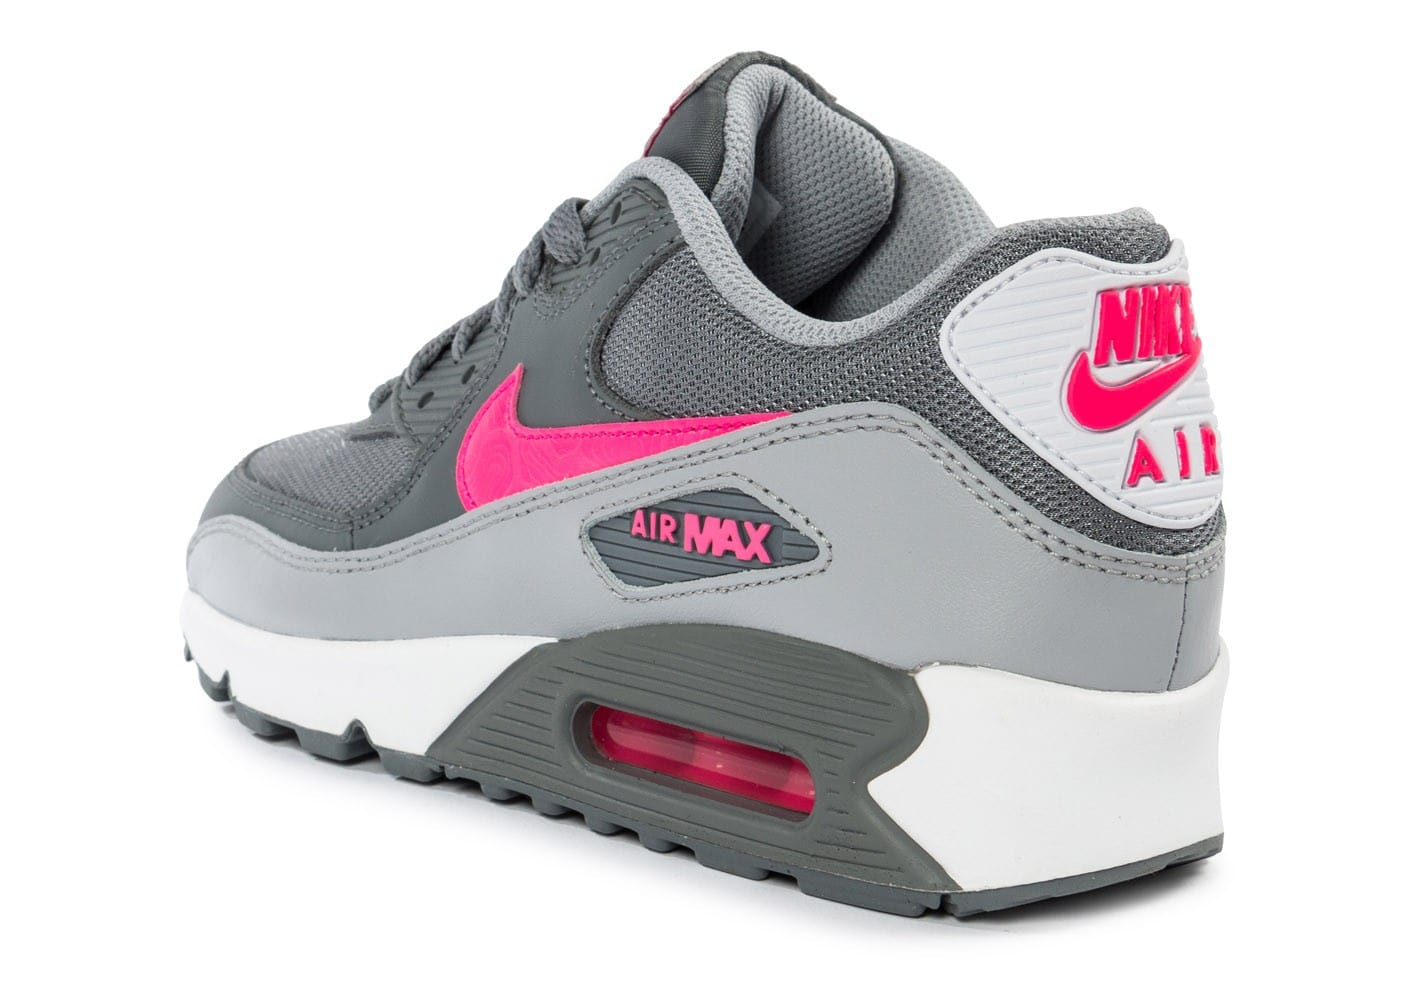 online store 35aec 370c0 chaussures nike air max 90 mesh junior grise et rose vue arriere